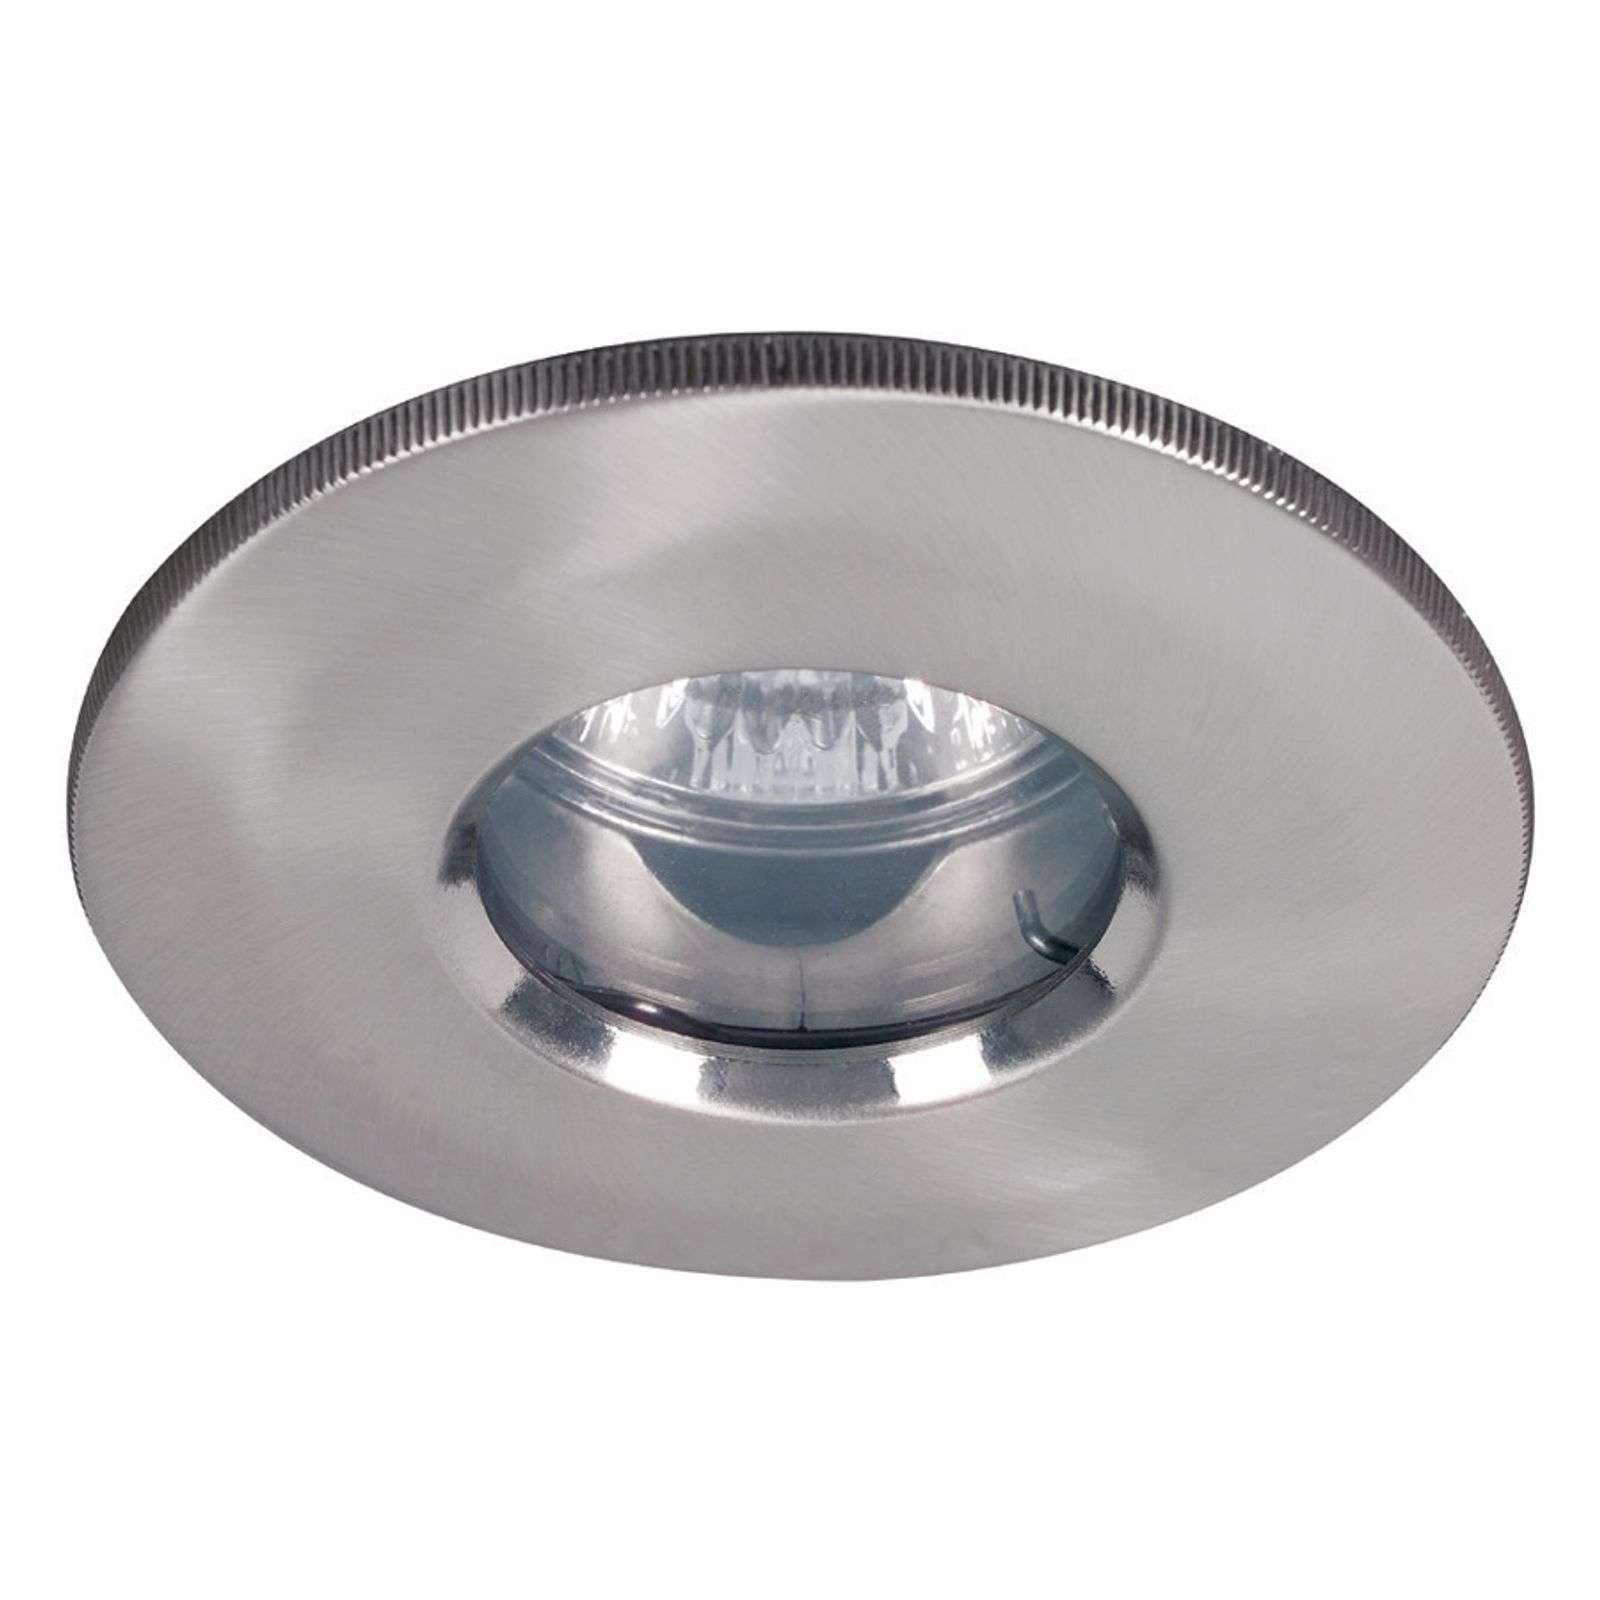 Downlight rotondo Kimi IP65 1 x 35 W, ferro